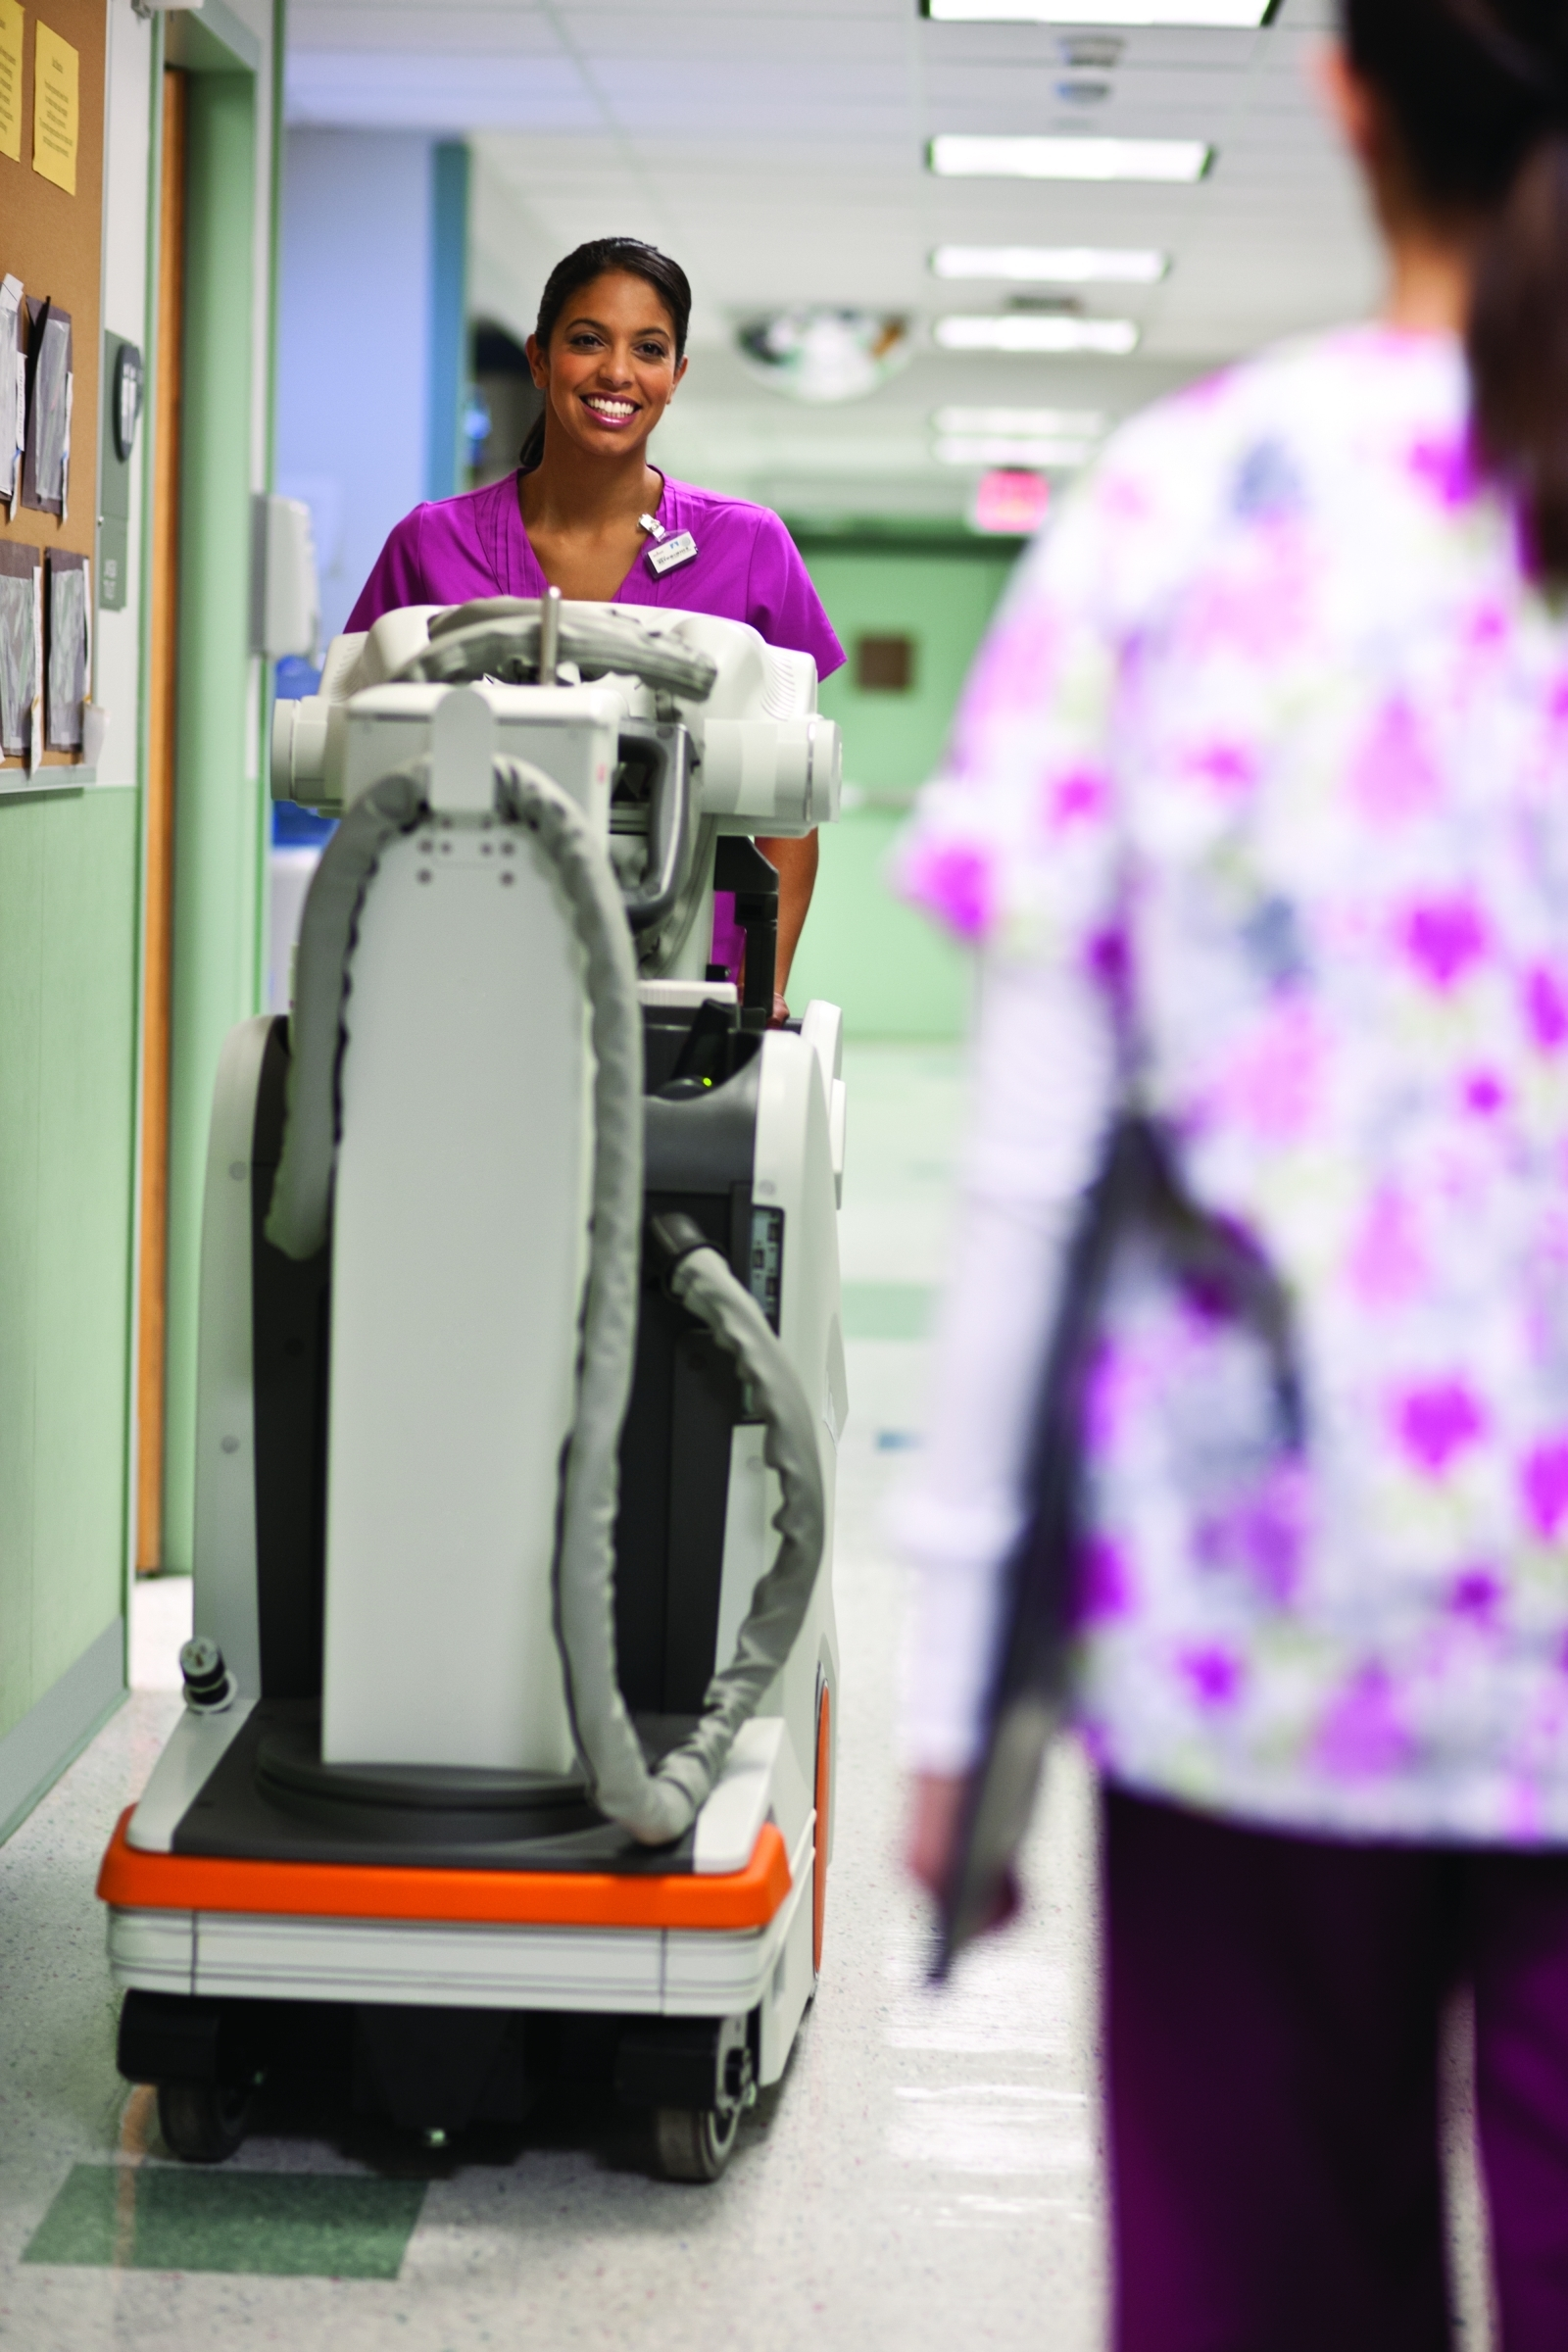 CARESTREAM DRX-Revolution Mobile X-ray System provides wireless access to images, a collapsible column that improves visibility, and the ability to easily maneuver the system in tight spaces. (Photo: Business Wire)